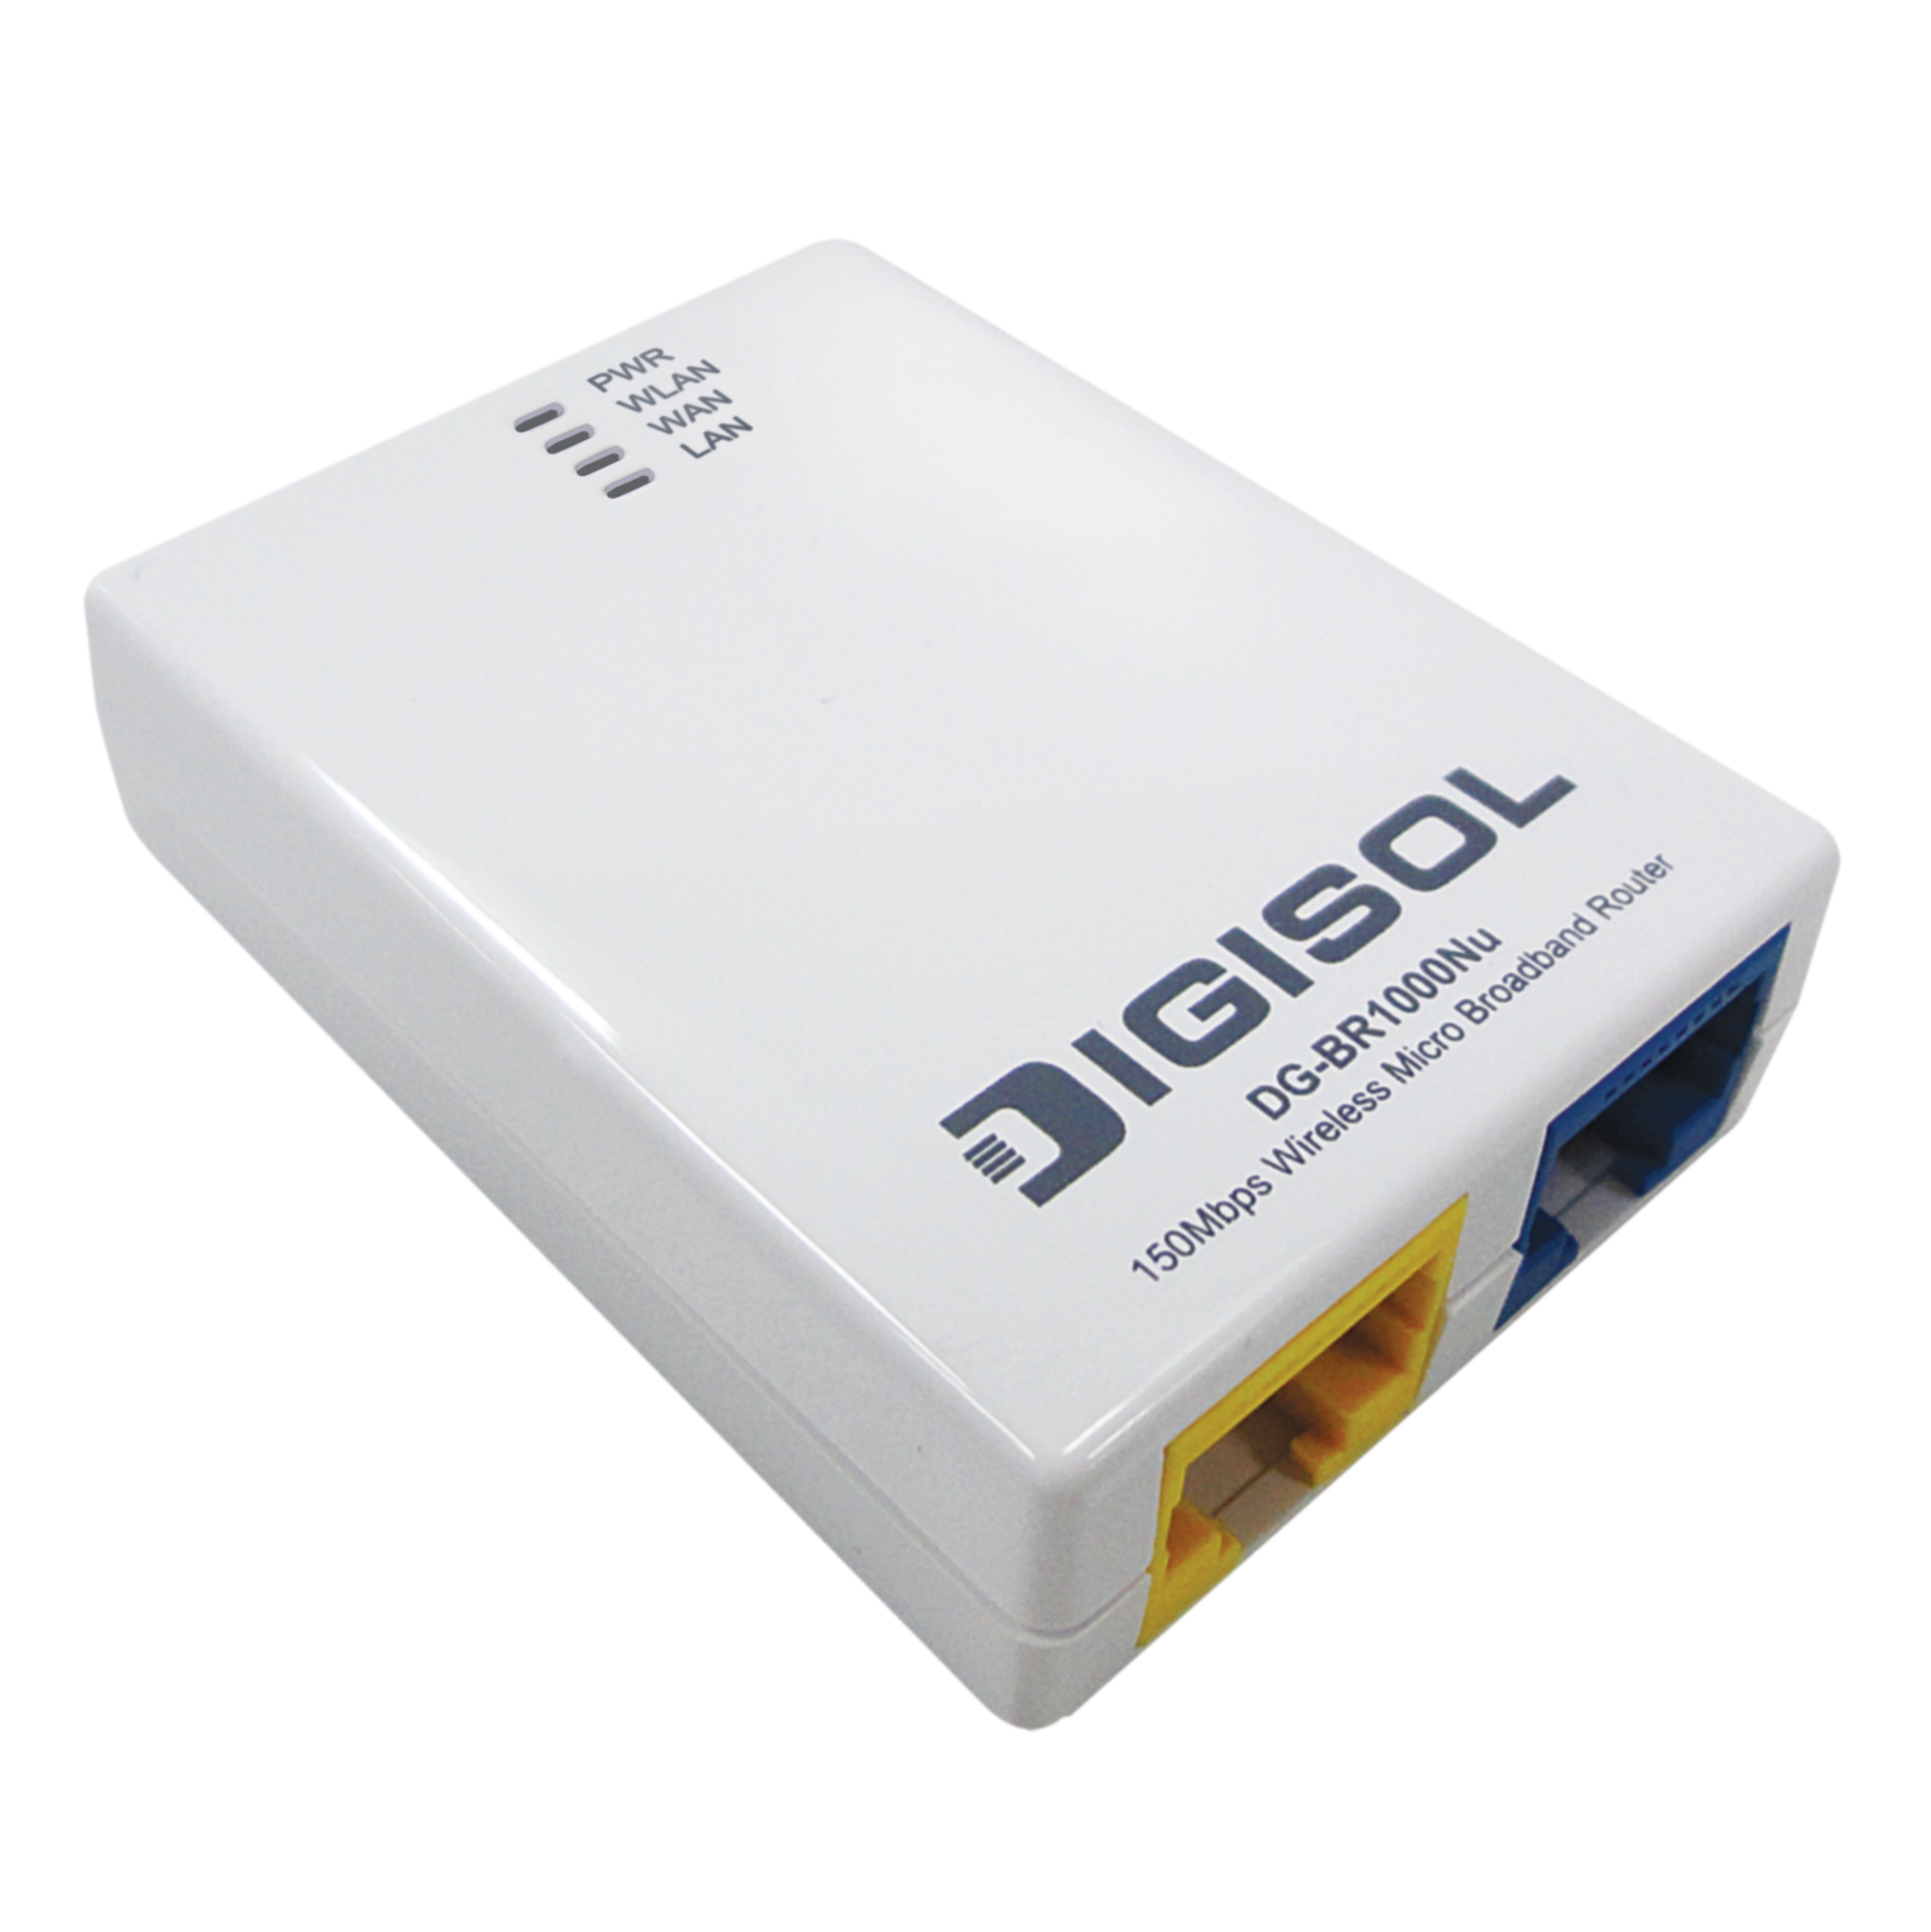 Introduction, overview and unboxing Digisol networking devices